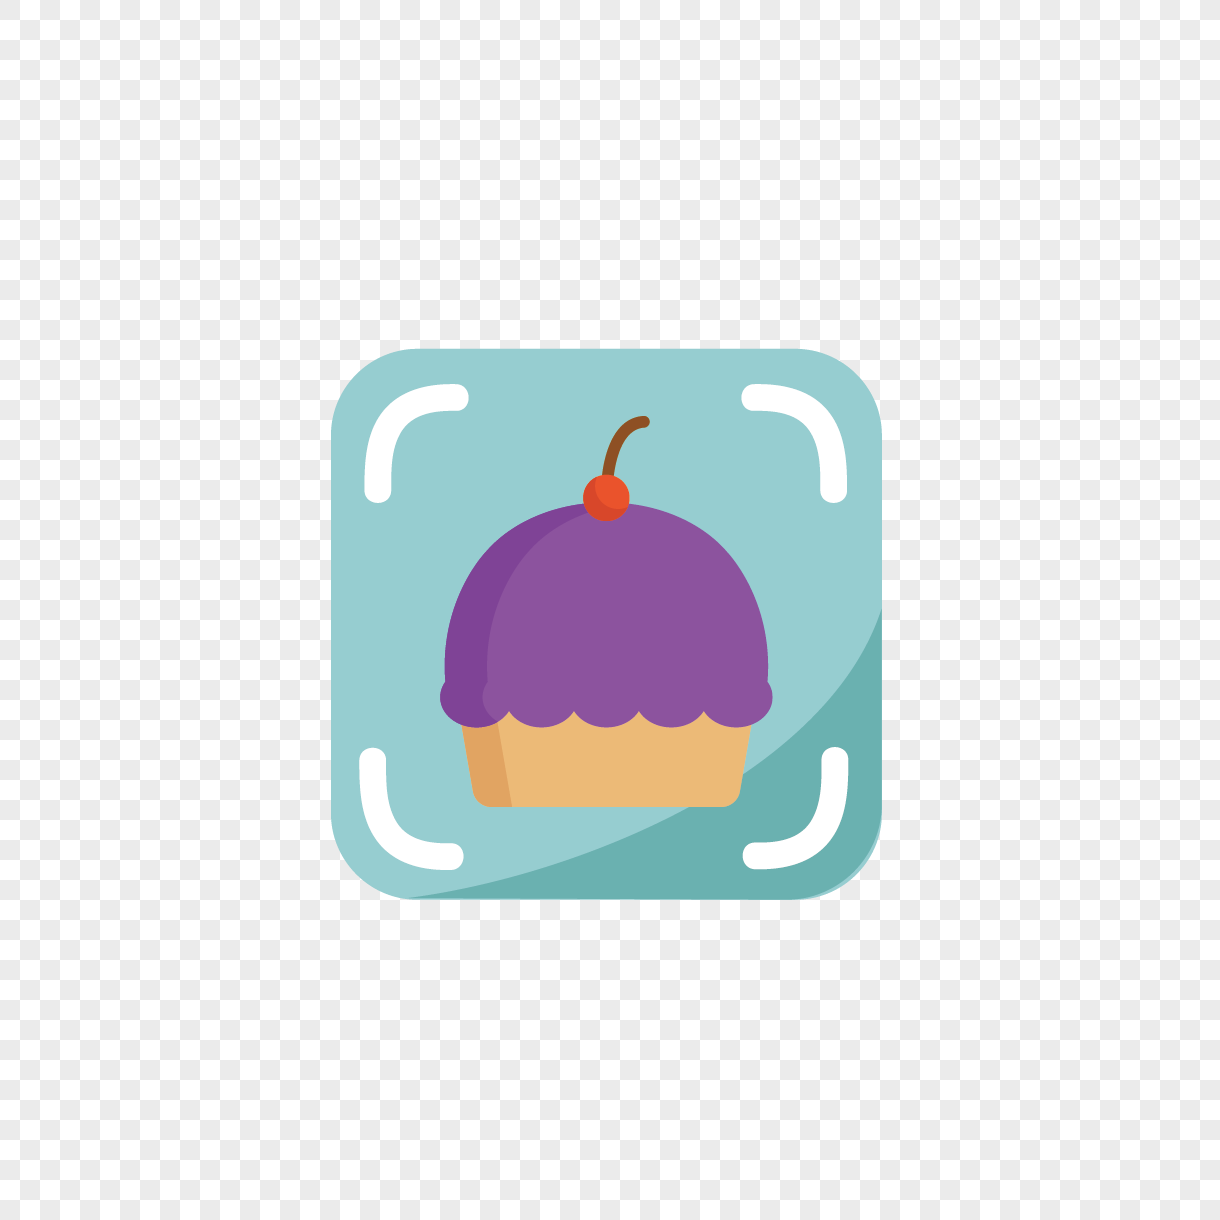 Cake Icon Icon Png Image Picture Free Download 400899905 Lovepik Com